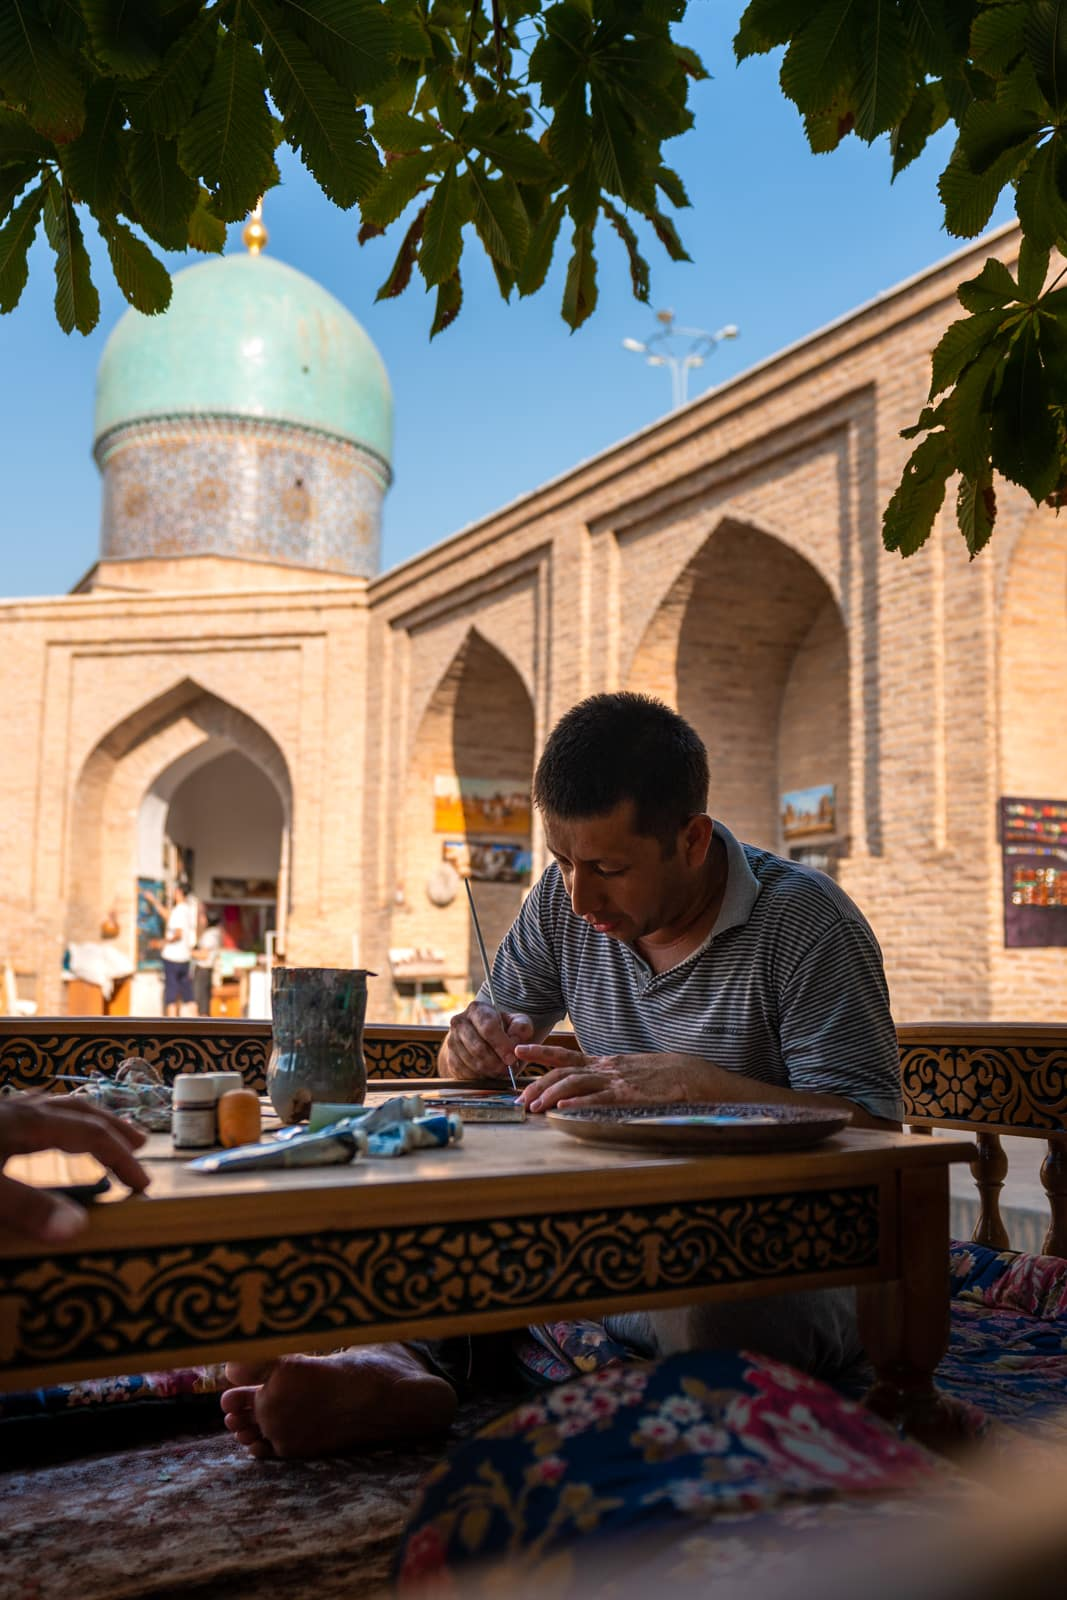 Artisan painting a plate in the Khast Imam complex